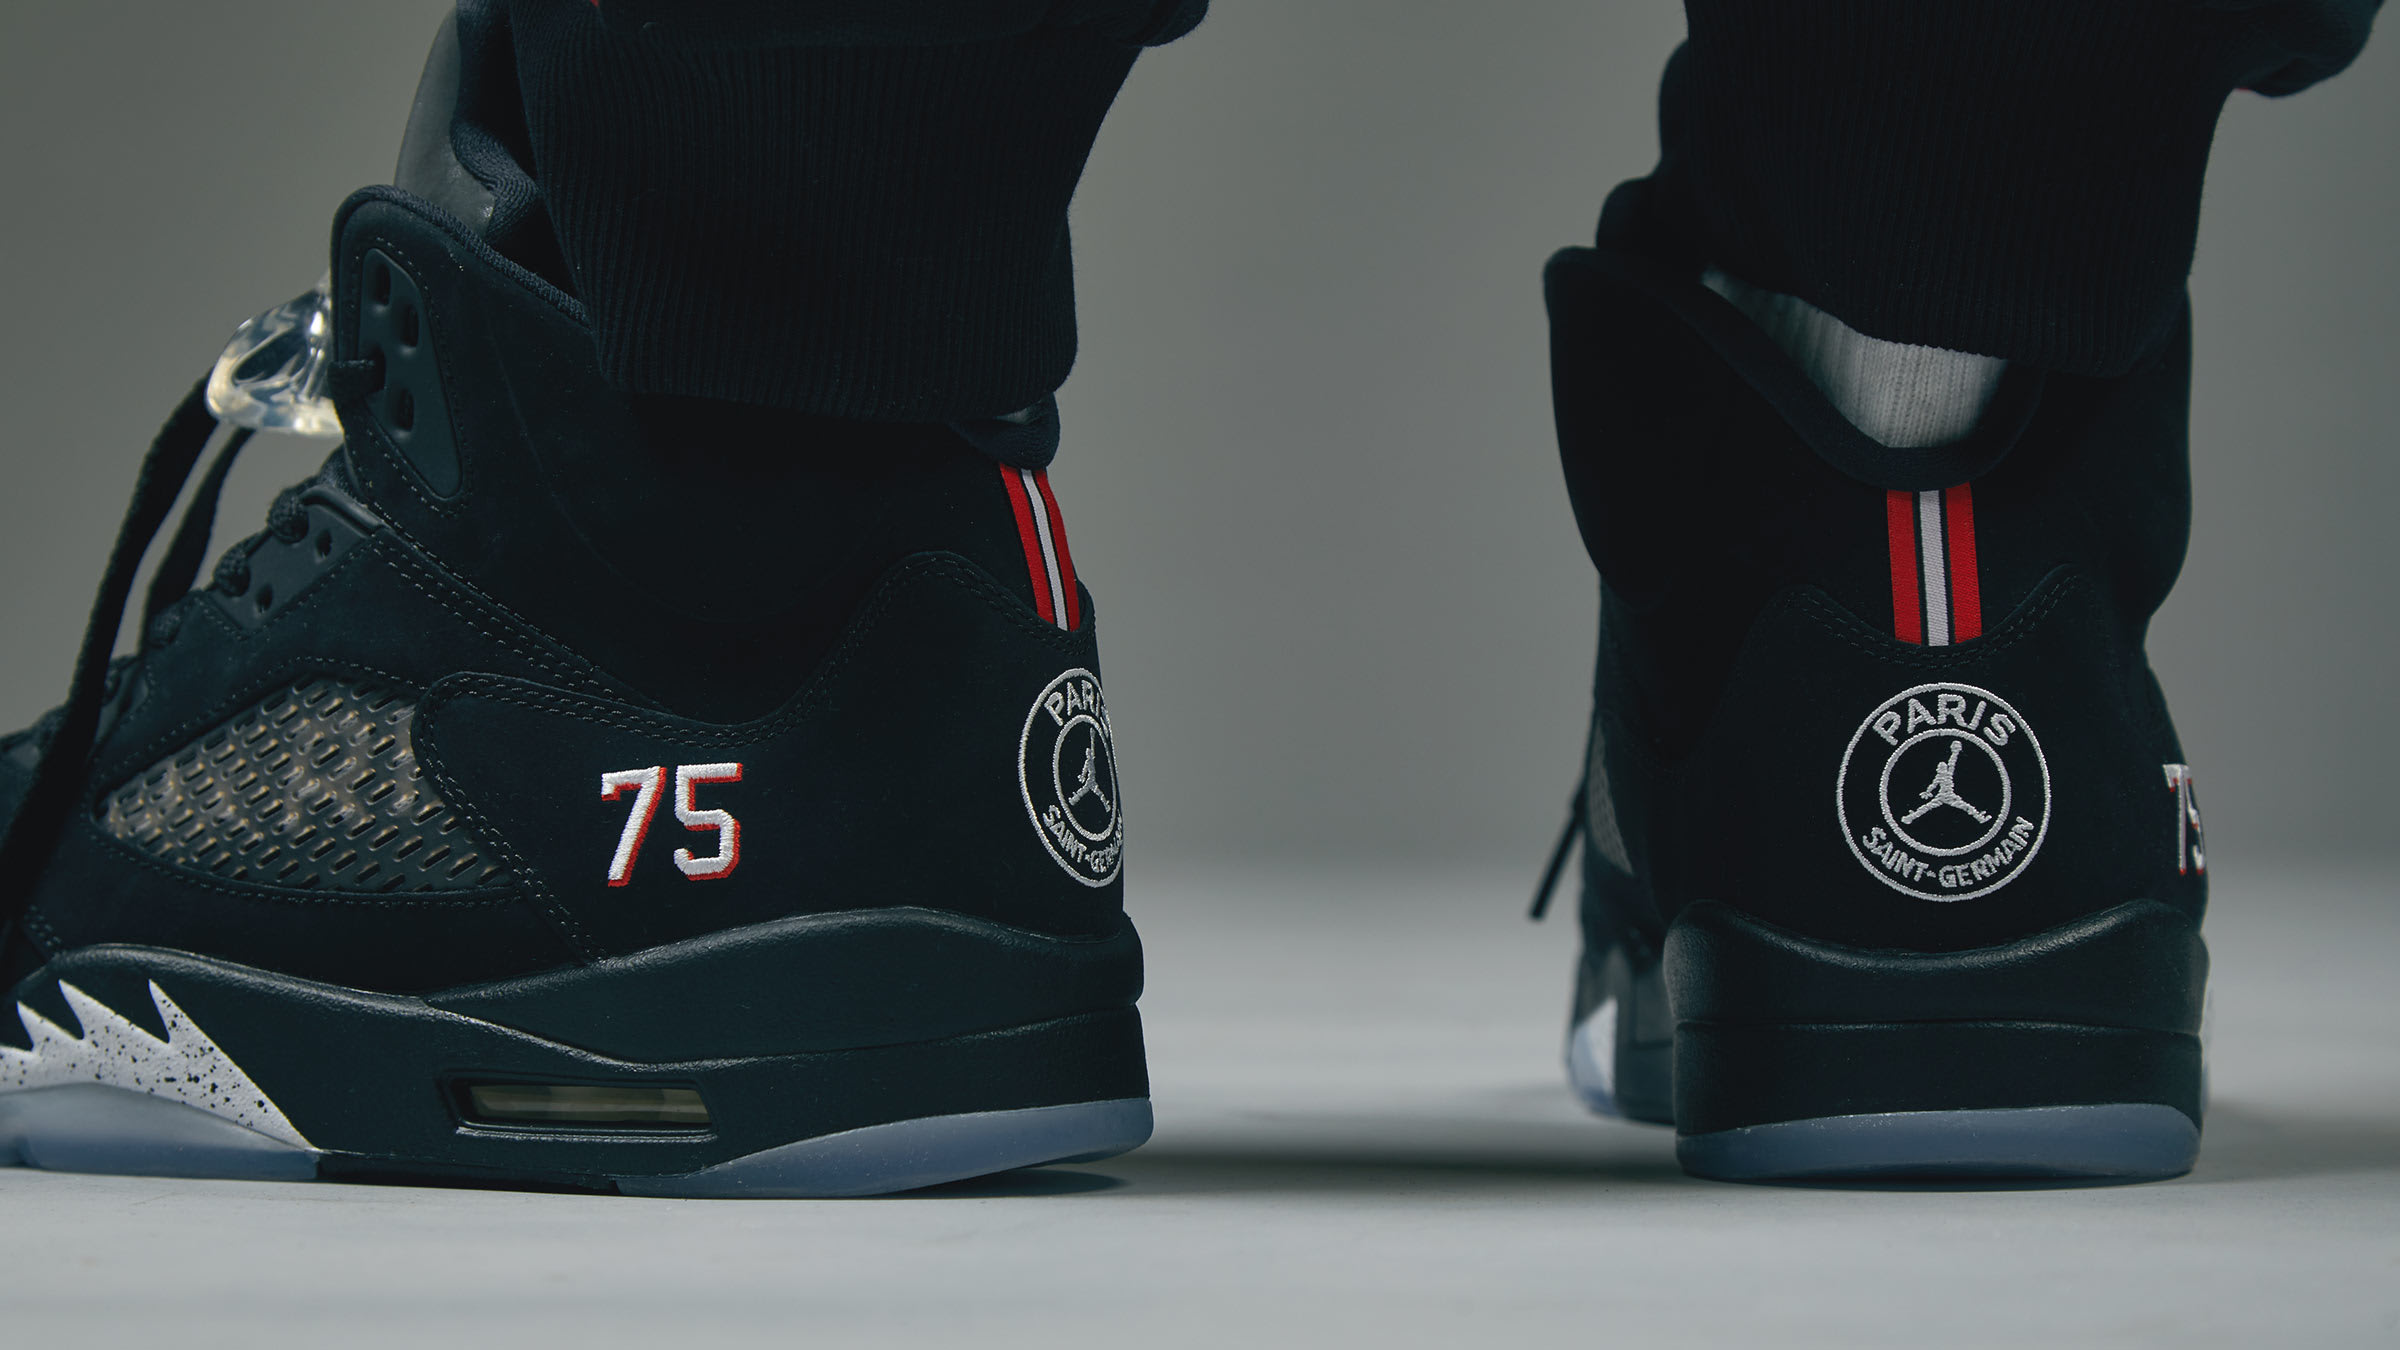 new concept 50246 2bd88 Jordan x Paris Saint-Germain Air Jordan 5 Retro. Black£169